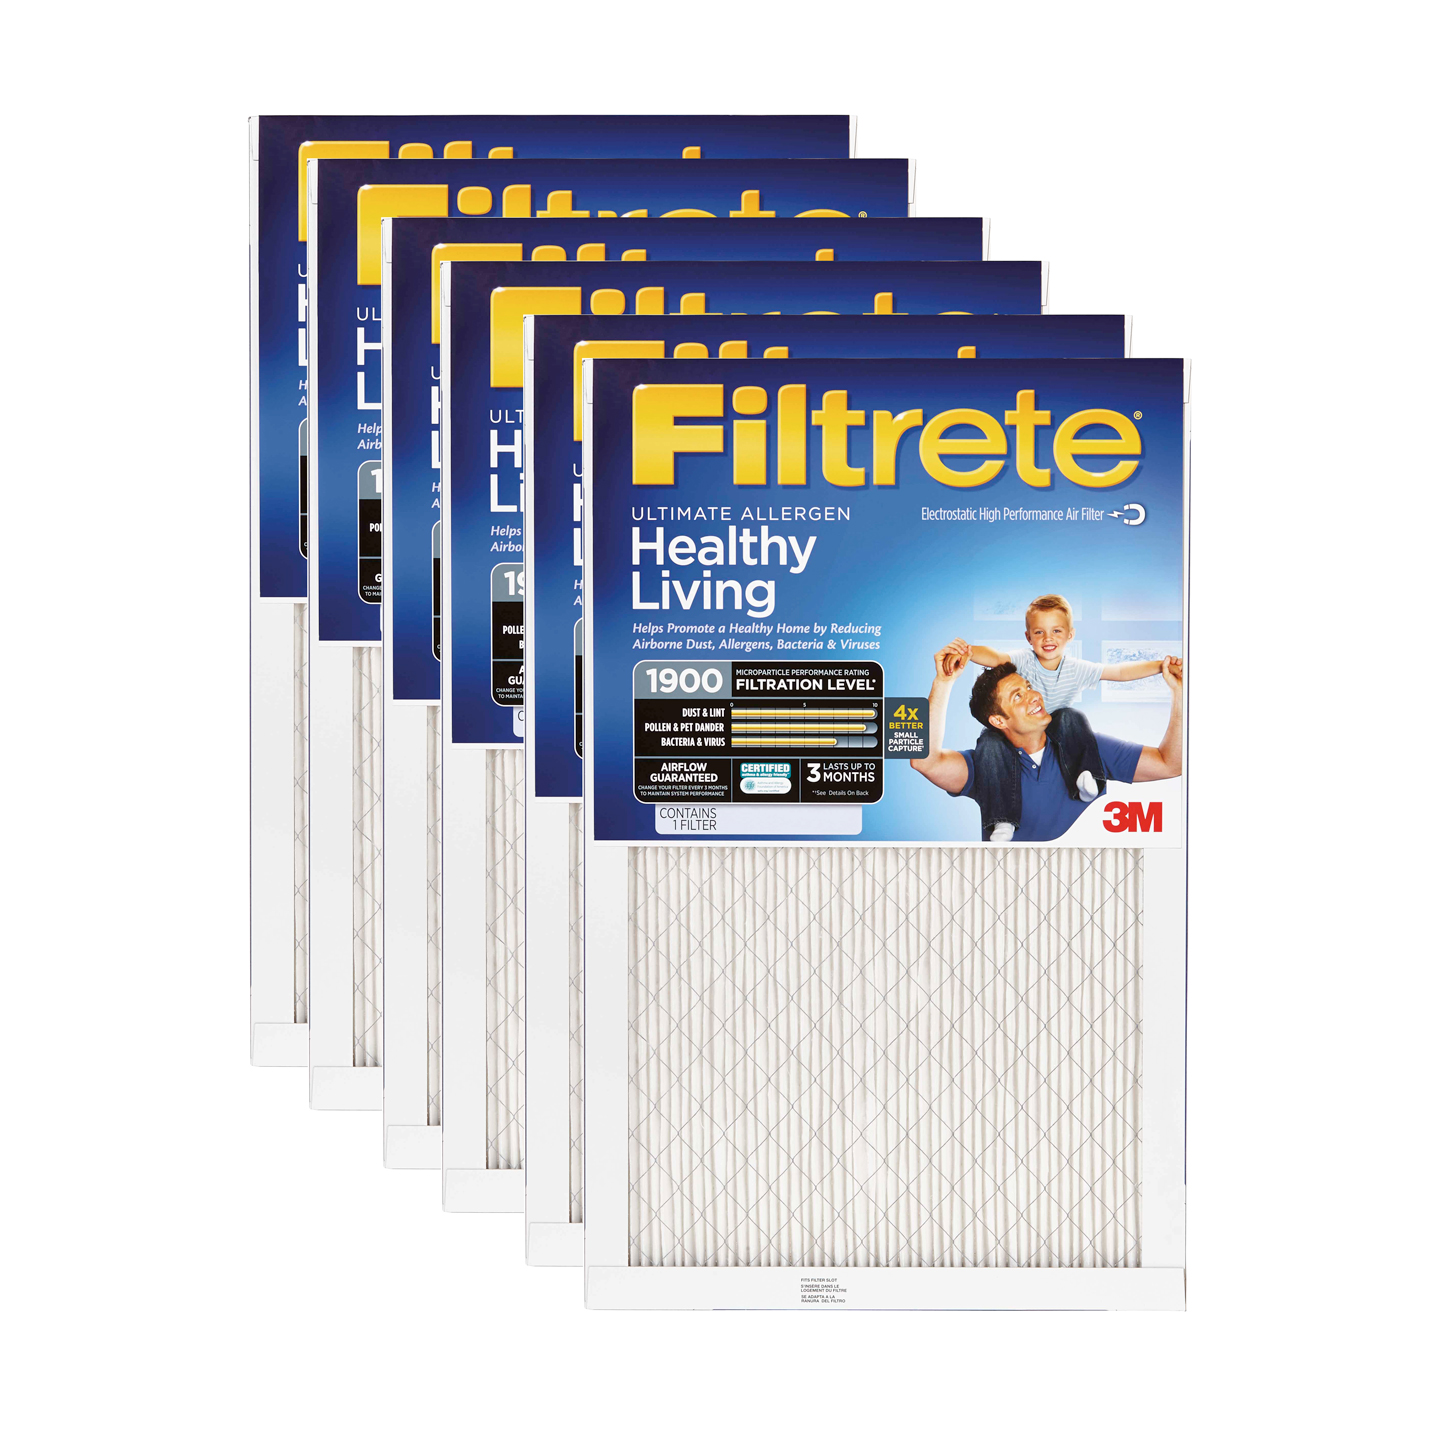 Filtrete 1900 Ultimate Allergen Healthy Living Filter - 14x24x1 (6-Pack) FILTRETE_ULTIMATE_BLUE_14x24x1_6_PACK